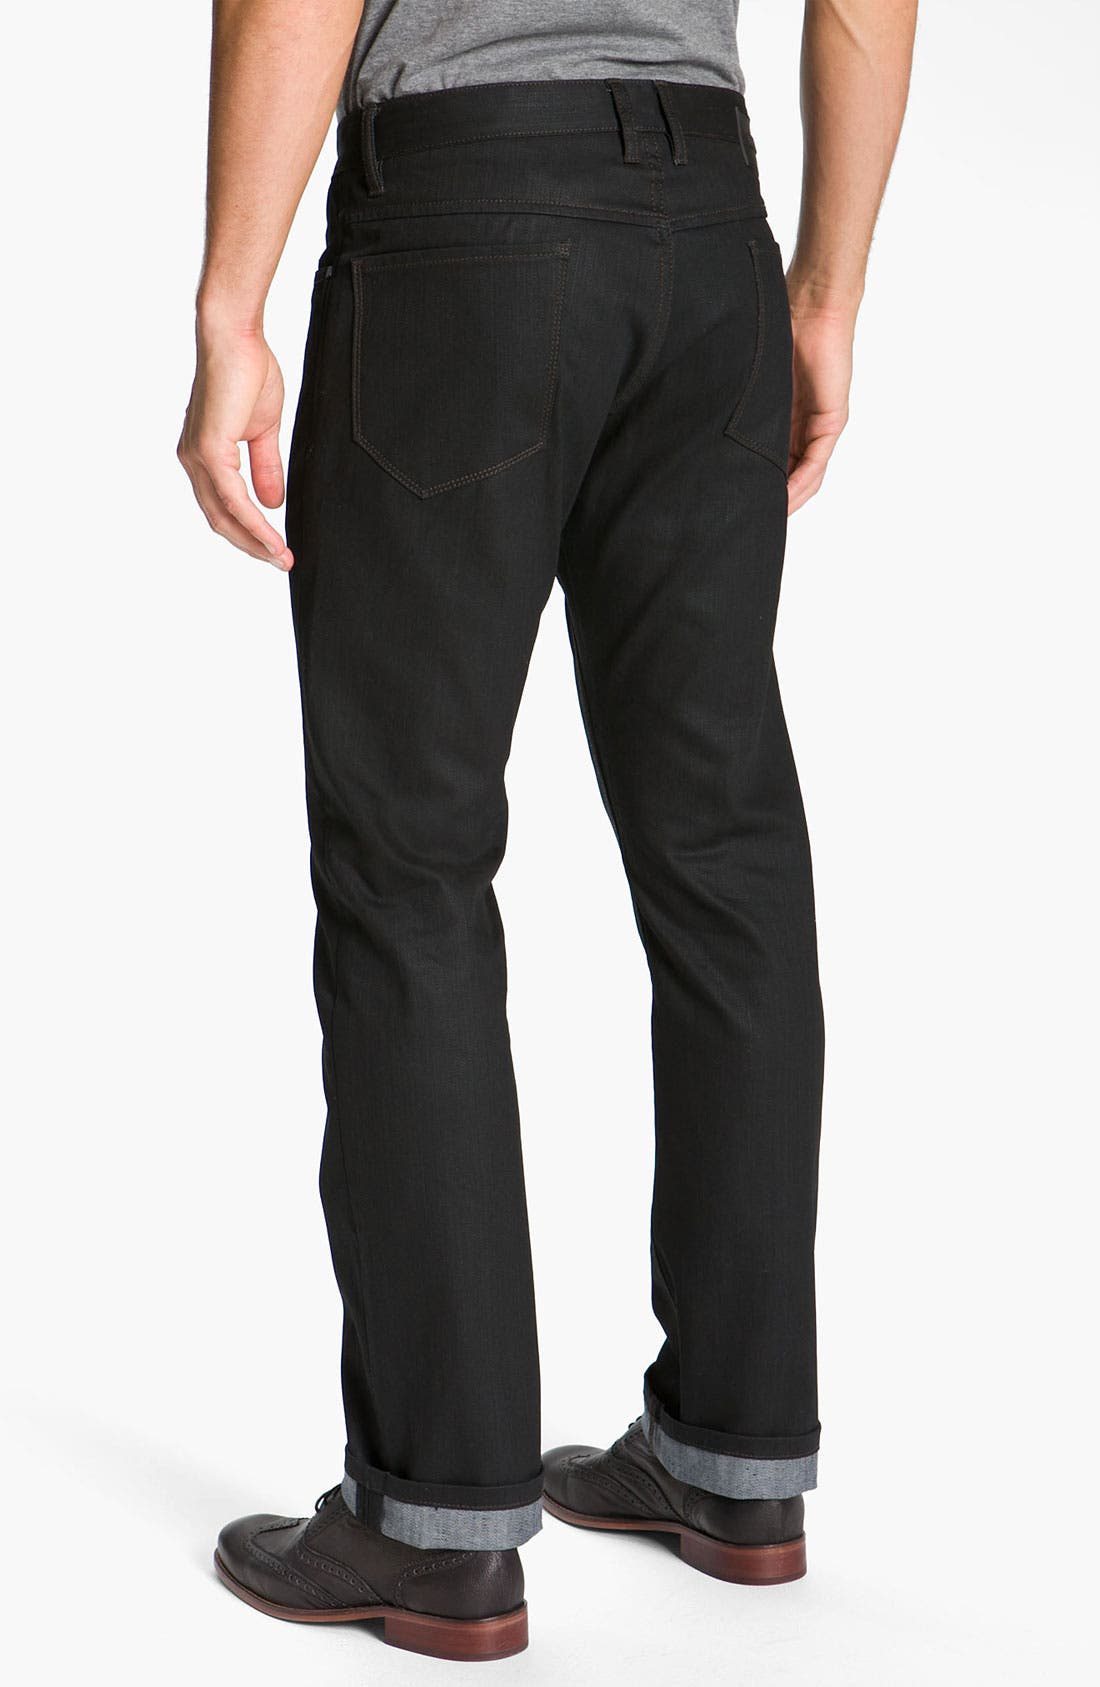 Alternate Image 1 Selected - Comune 'Rudy' Coated Slim Straight Leg Jeans (Black Indigo)